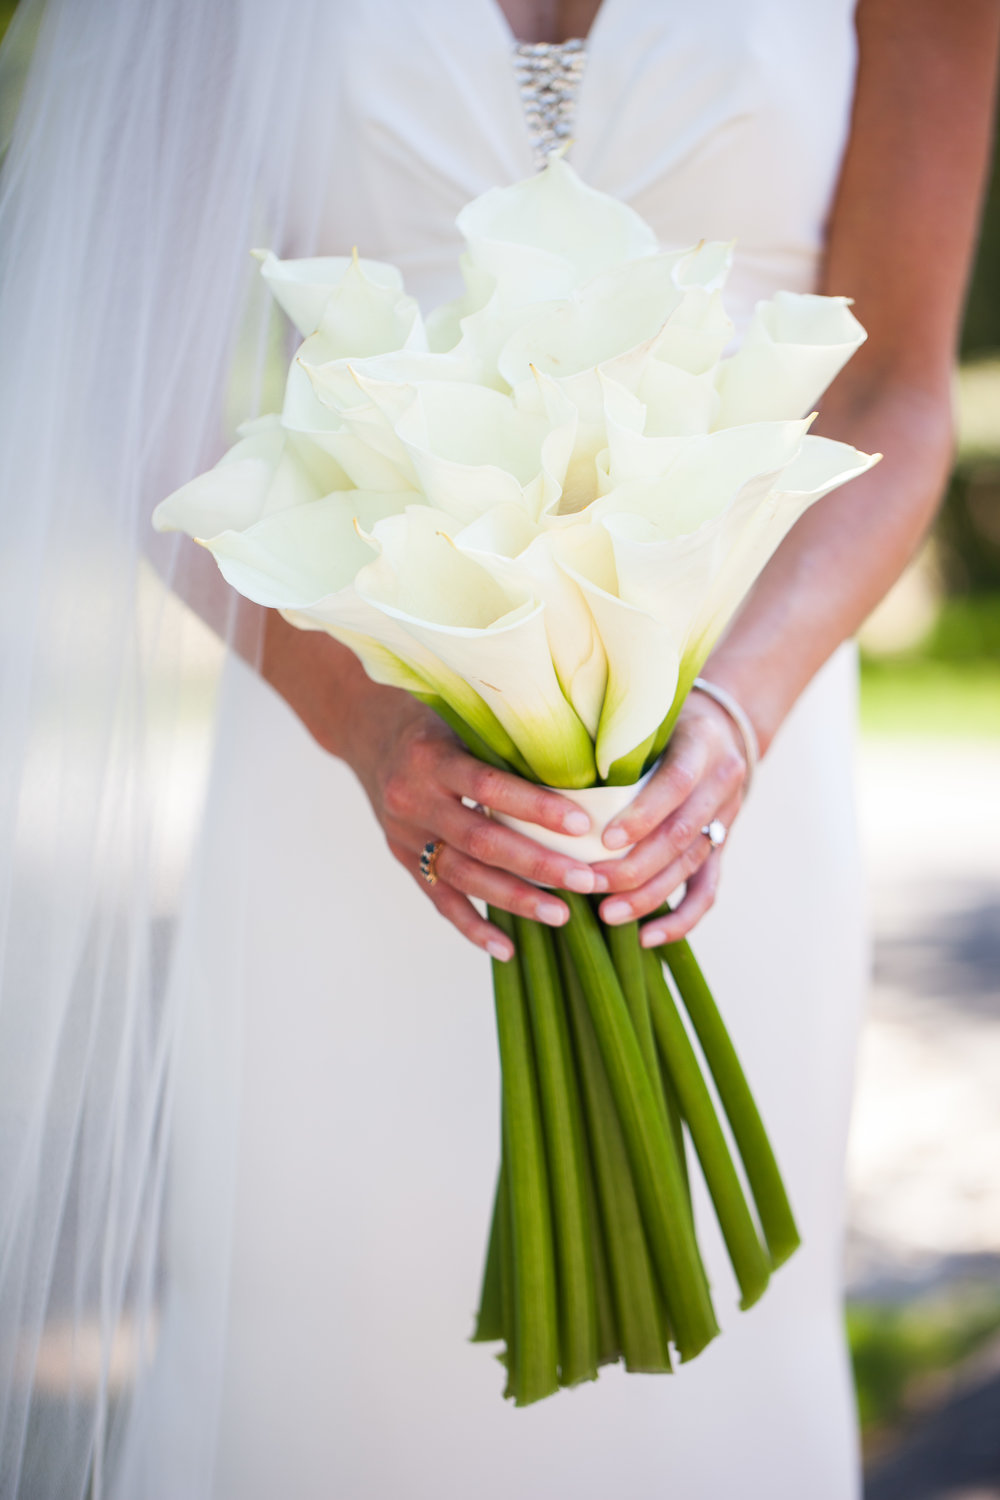 Bridal bouquet with white lilies